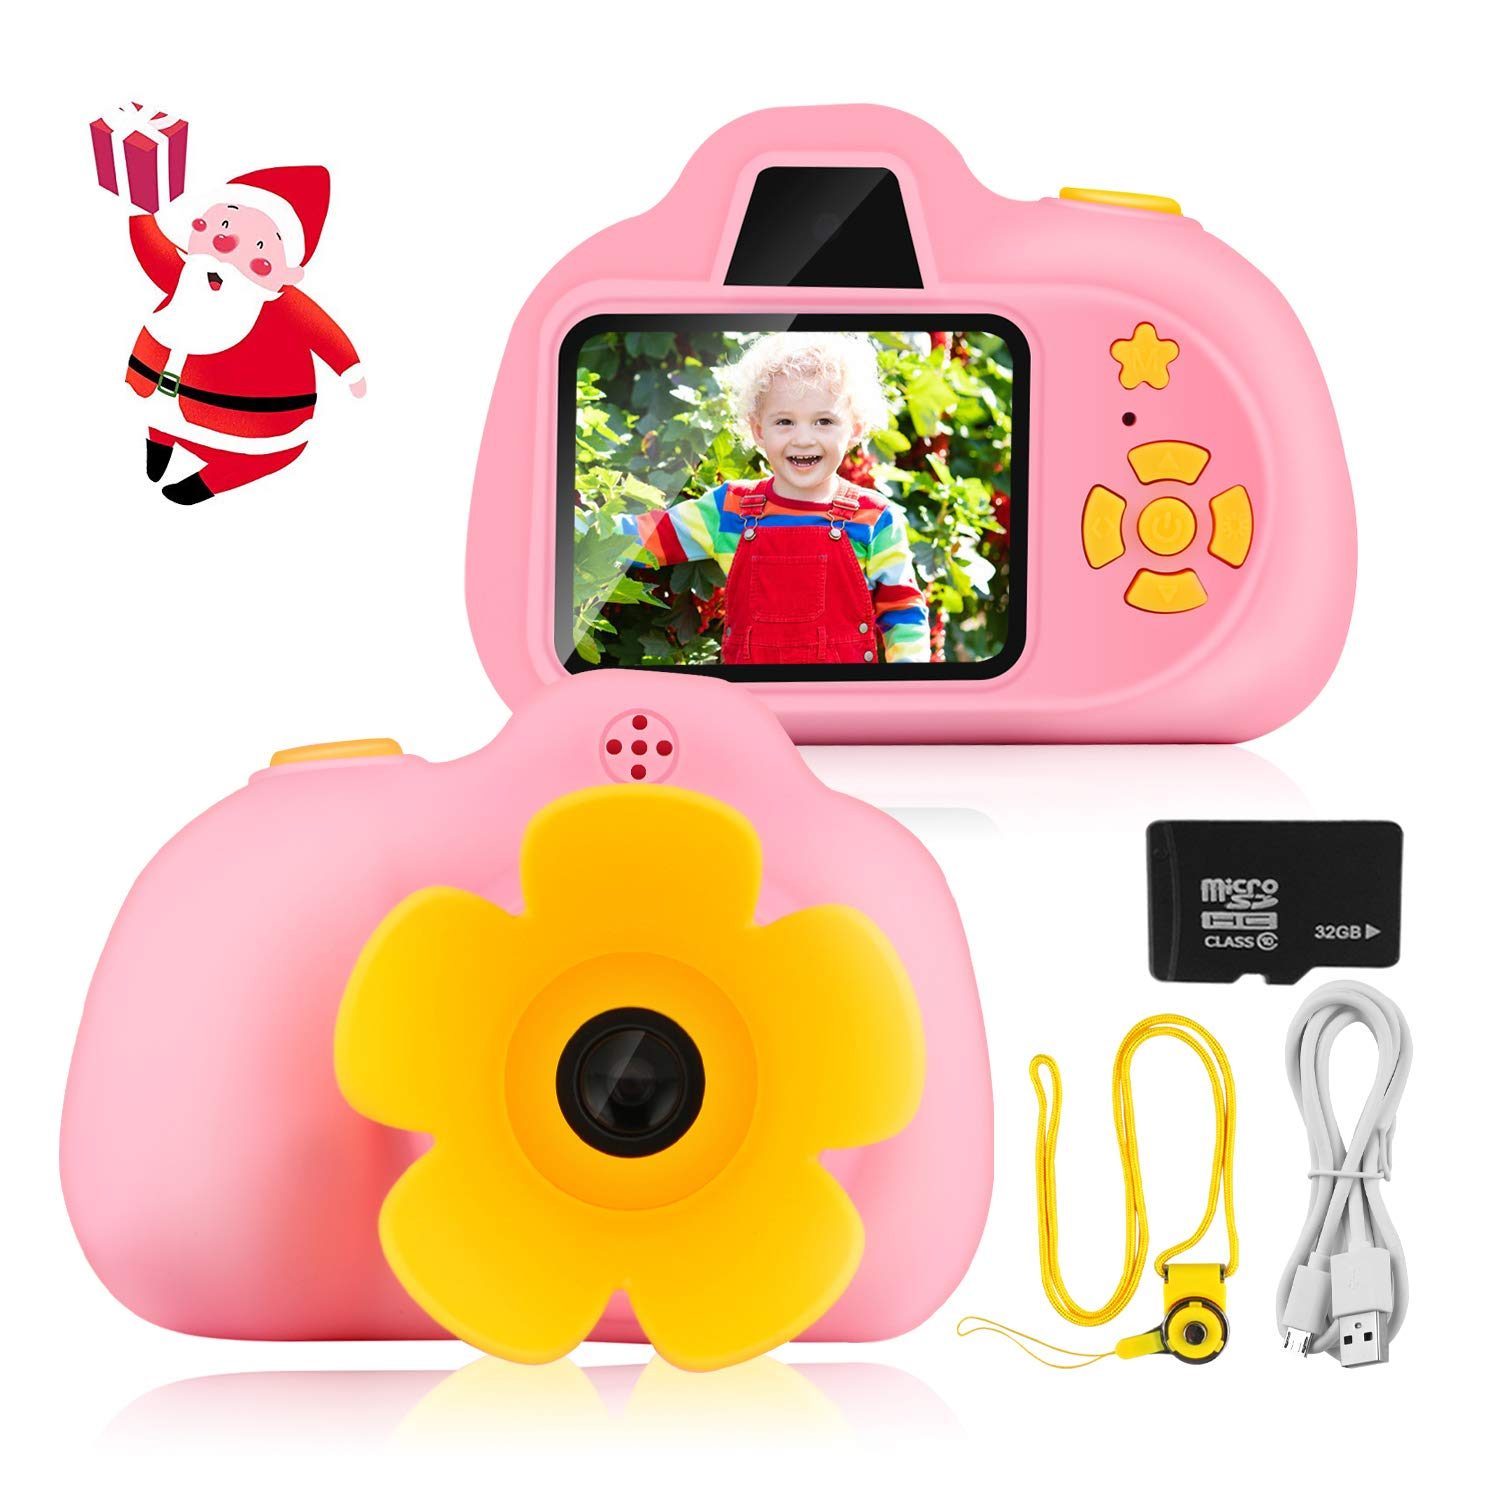 [32GB Memory Card Included] Kids Camera Gifts for 4-8 Year Old Girls, Kids Digital Mini Rechargeable Children Shockproof Digital Camcorders Kid Toys Gift for Outdoor Play, 8MP HD Camcorders (Pink)